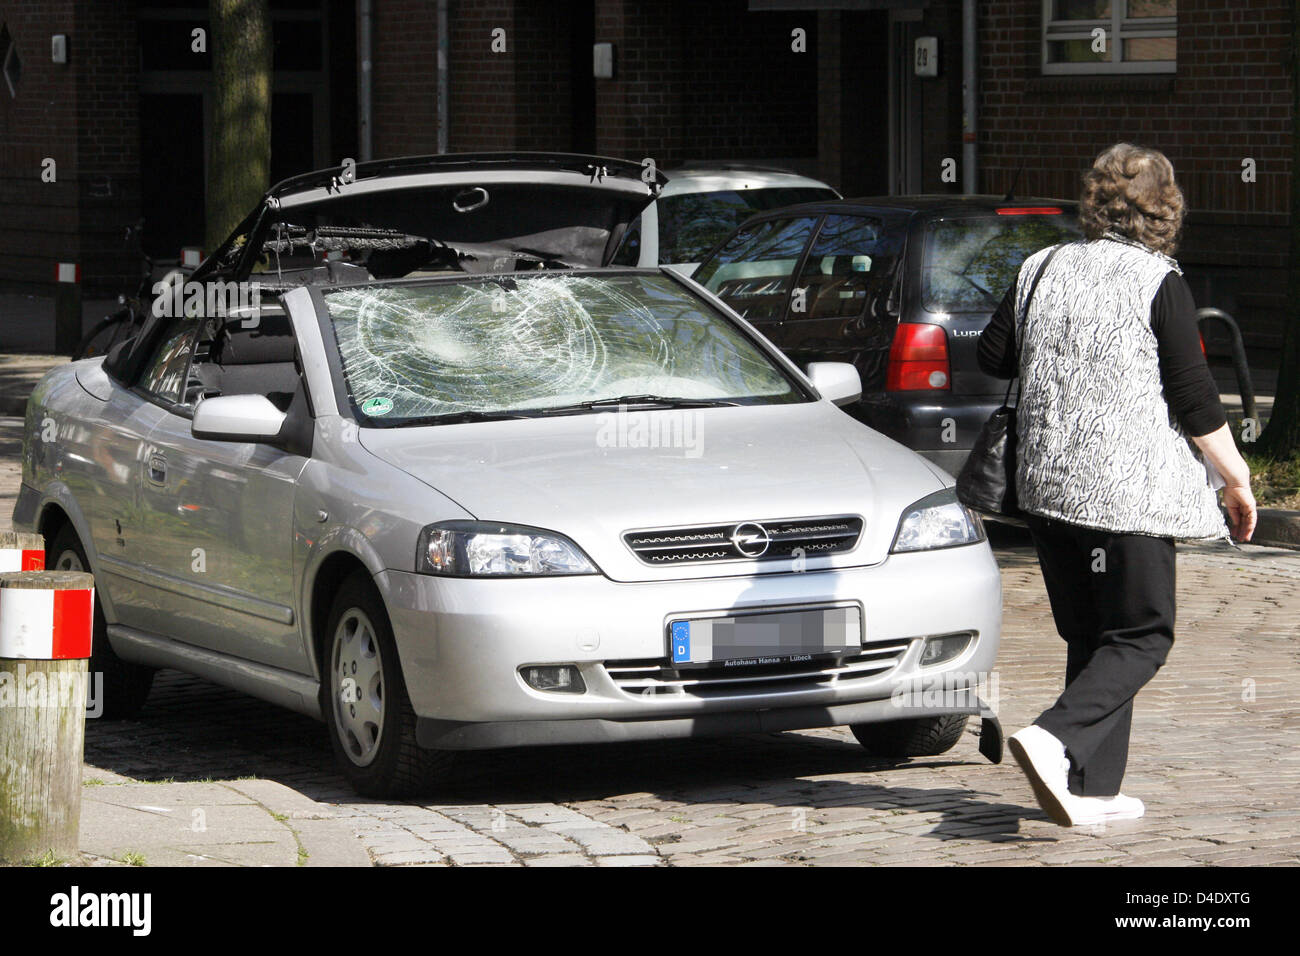 A passerby is pictured next to a damaged car after May 1st demonstrations in Hamburg, Germany, 2 May 2008. Violent Stock Photo